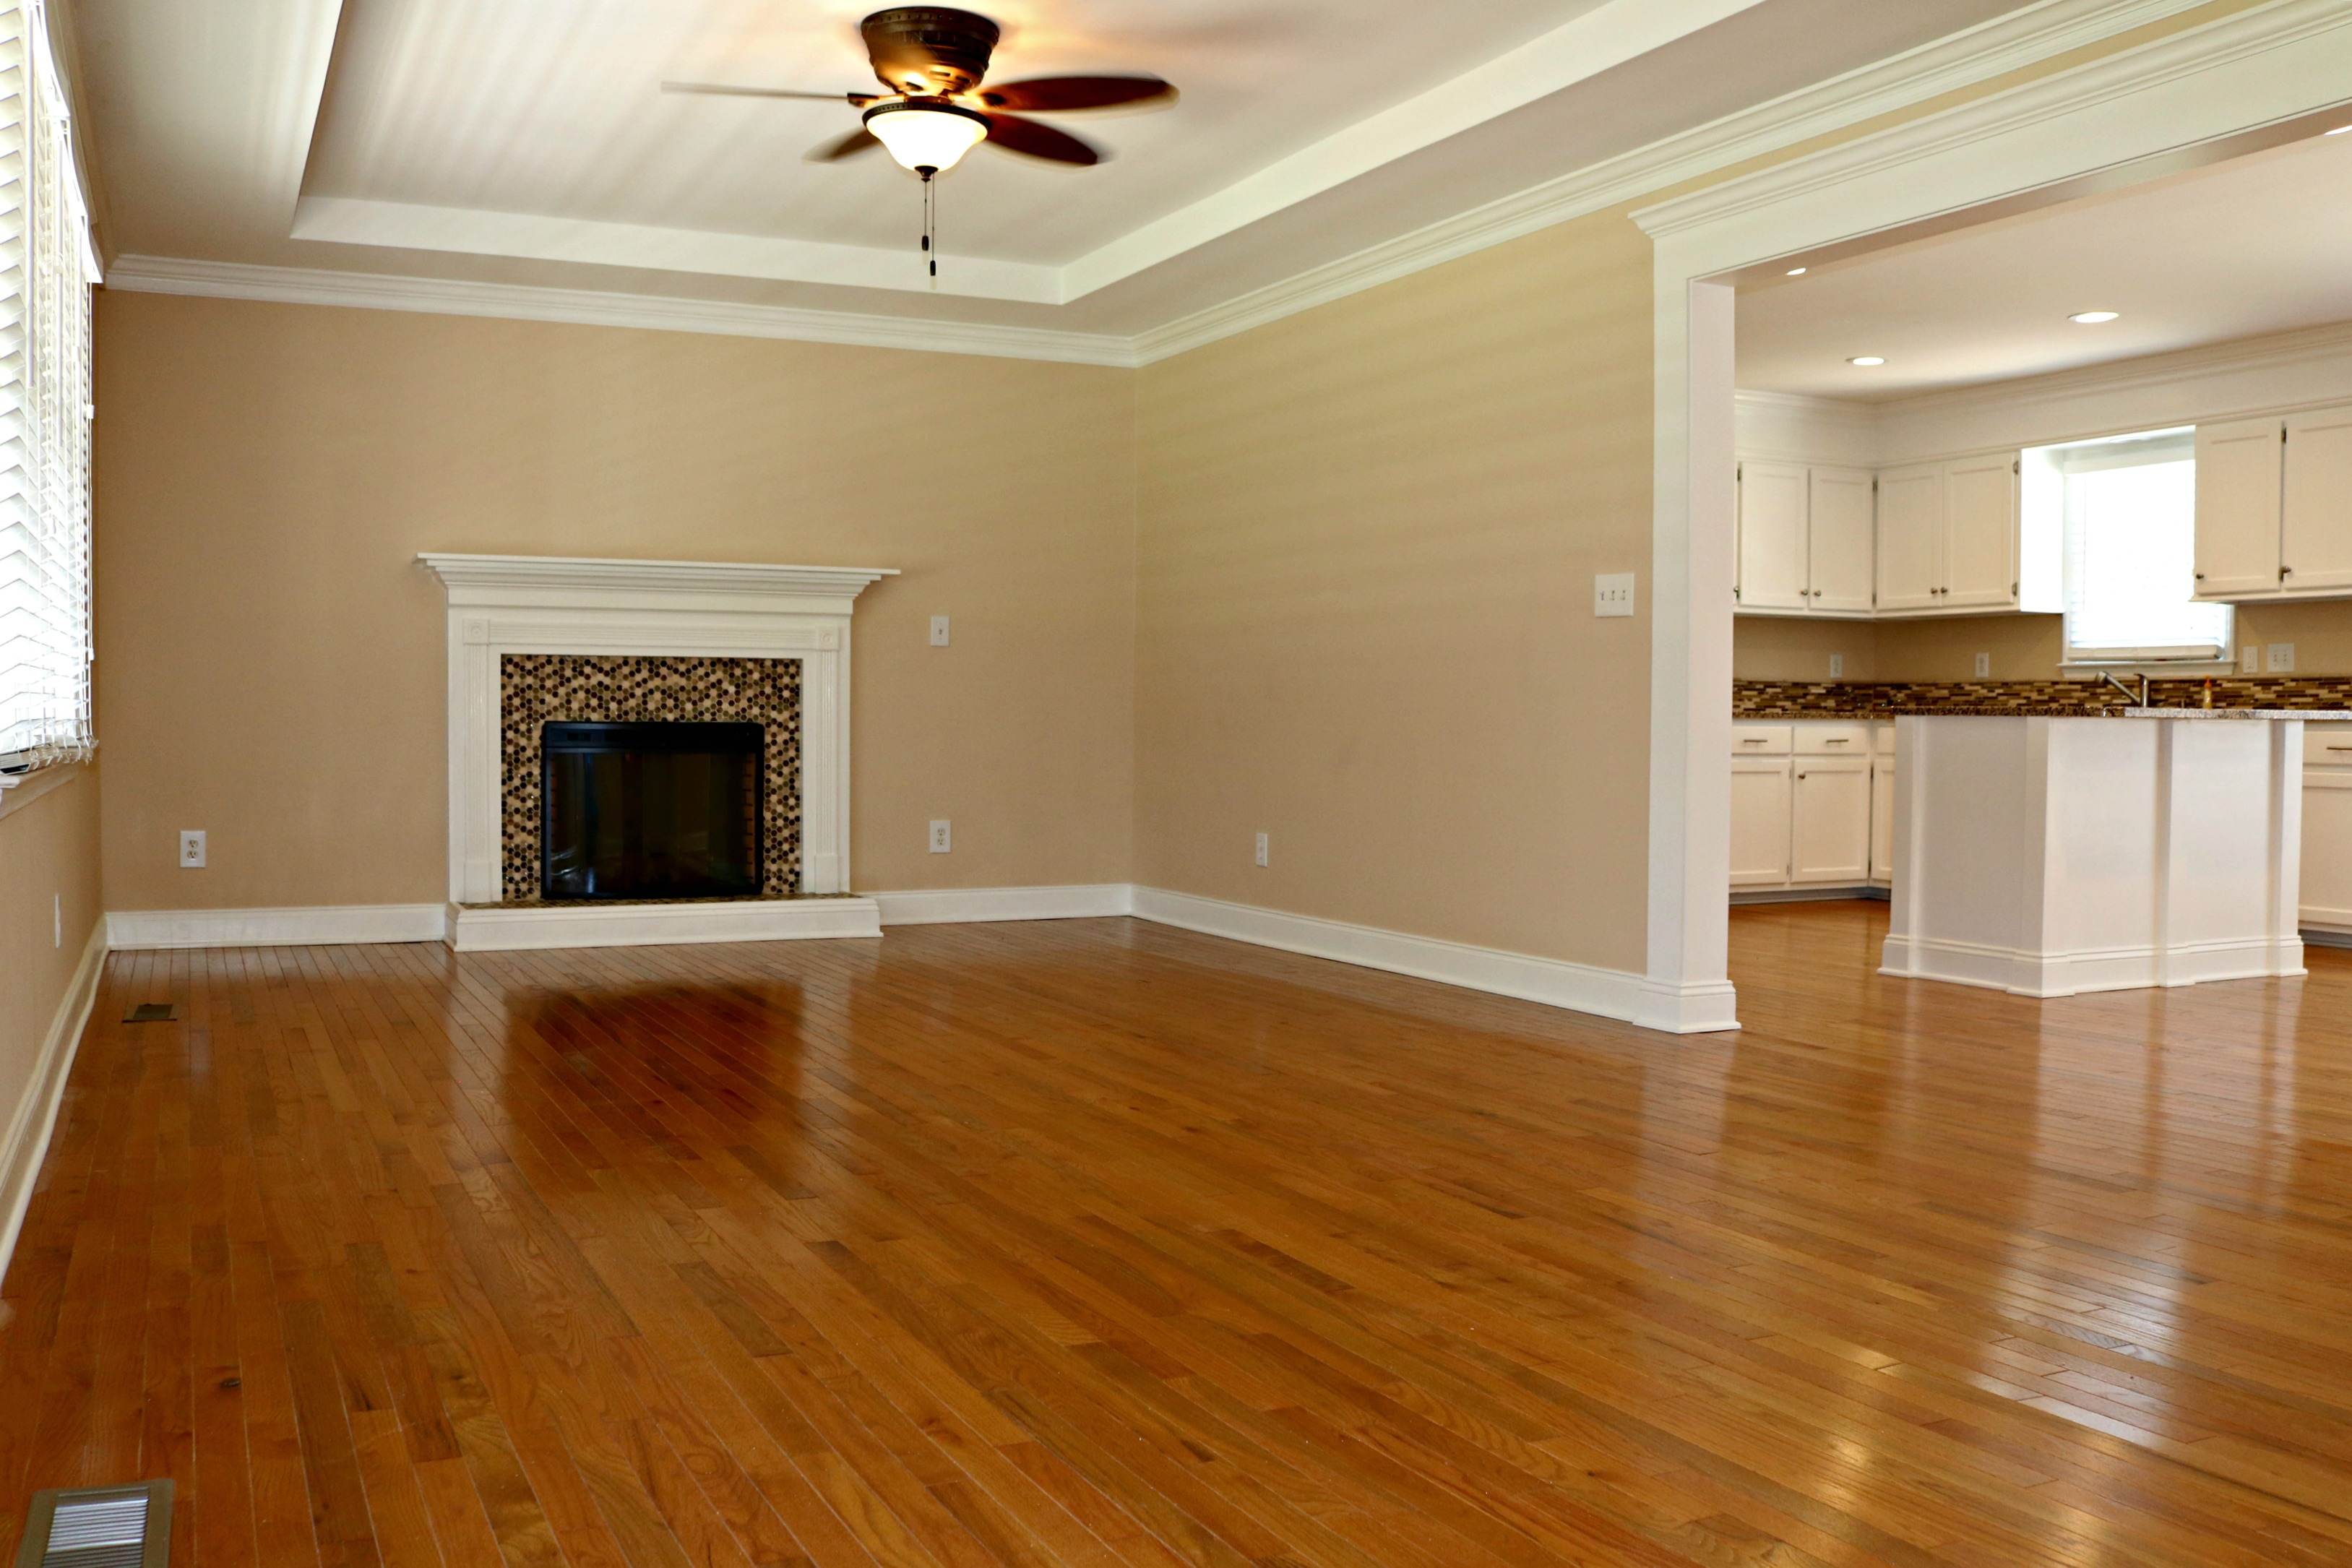 Your New Home Features An Open Floor Plan With GORGEOUS Hardwood Flooring Throughout The Living Room Kitchen Dining Hallway And Master Suite